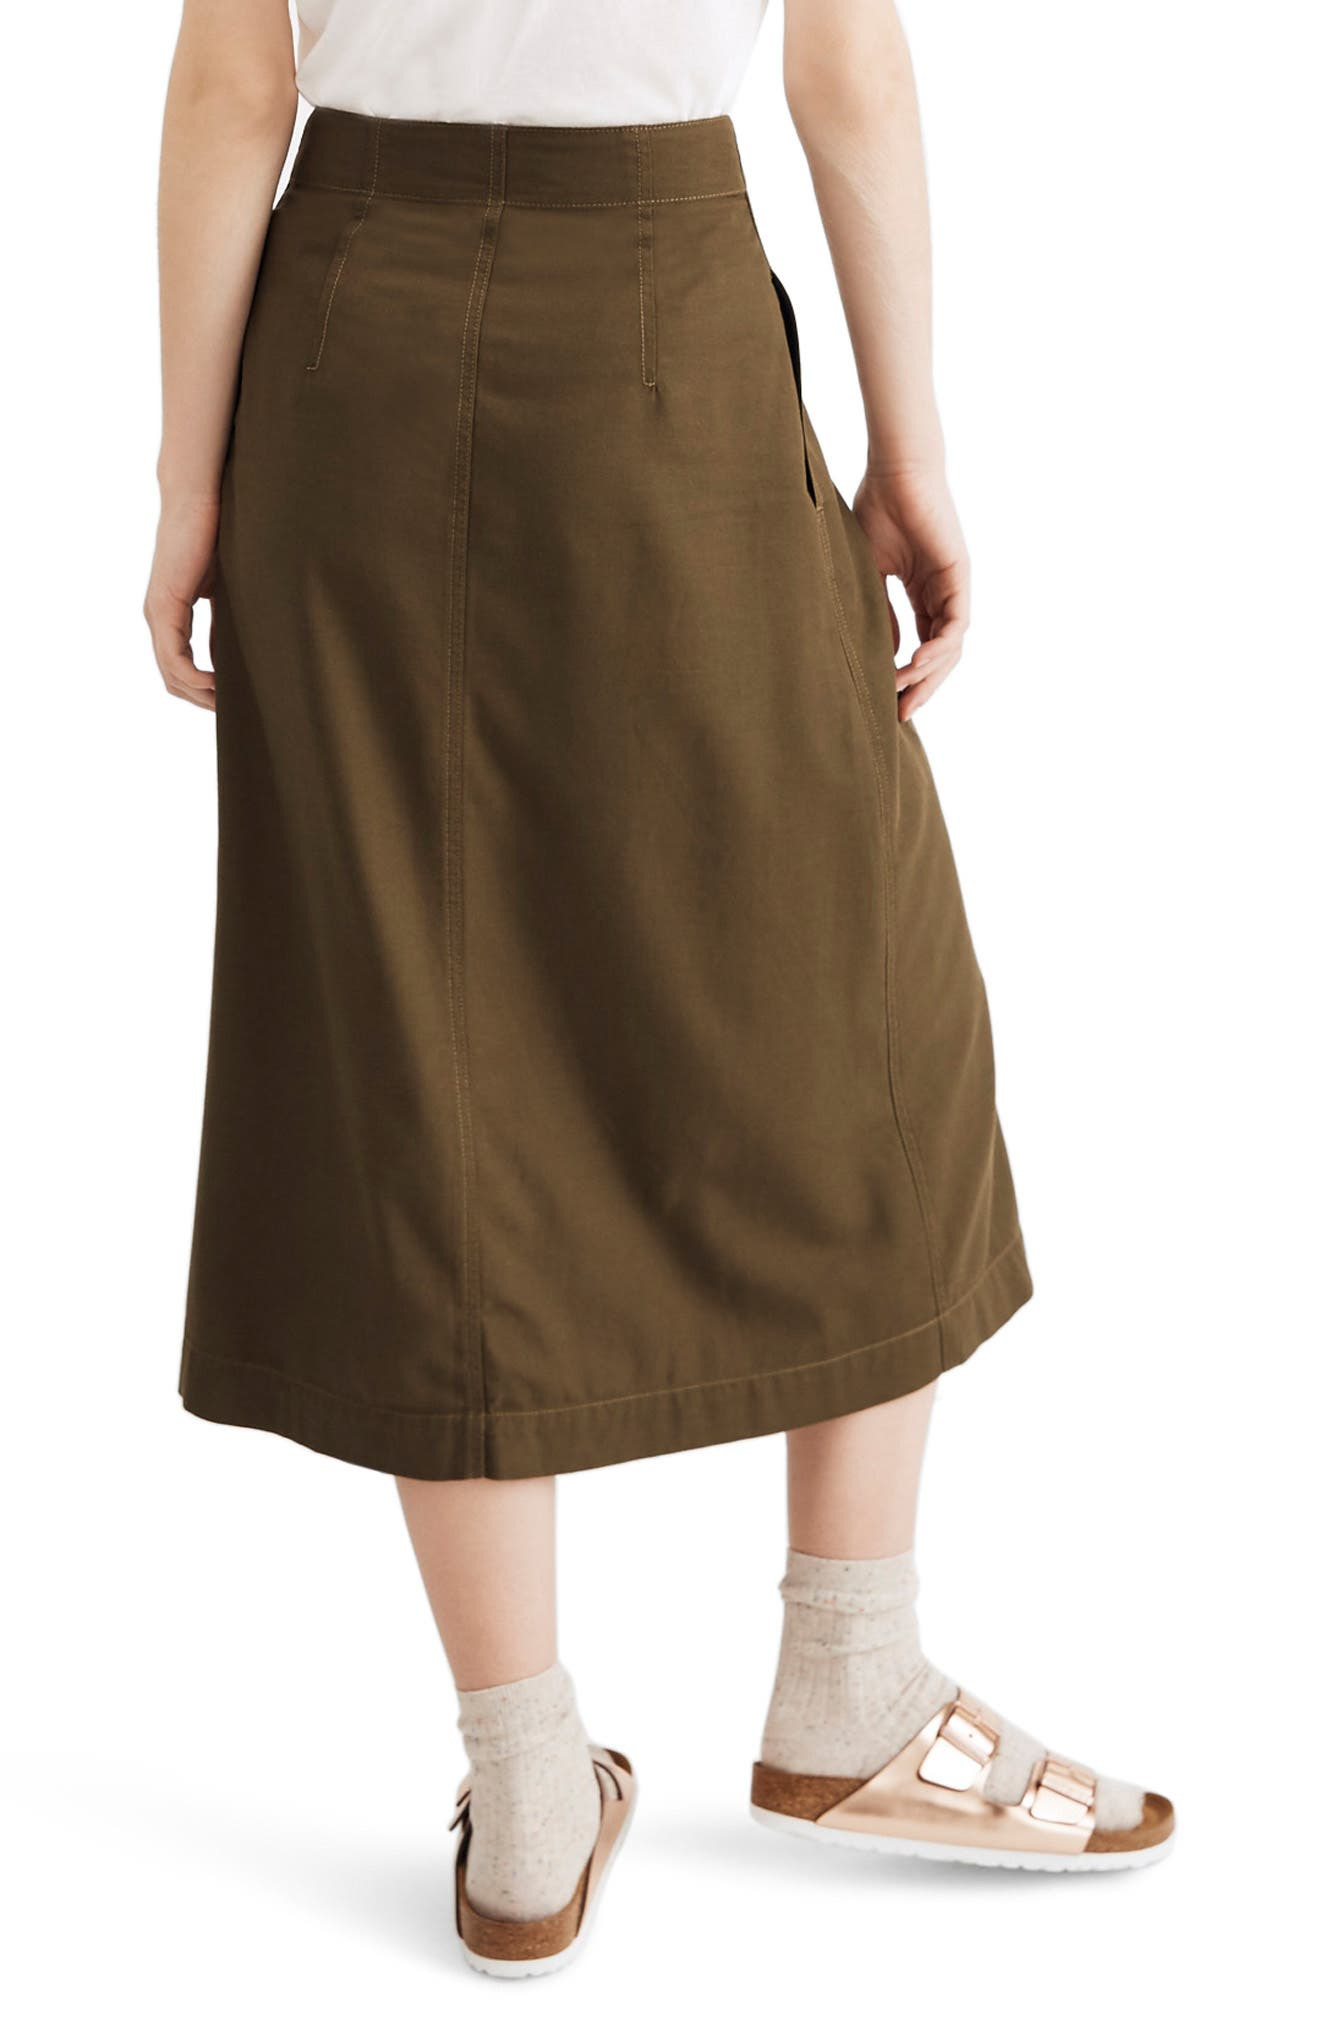 MADEWELL, Patio Button Front Midi Skirt, Alternate thumbnail 2, color, KALE